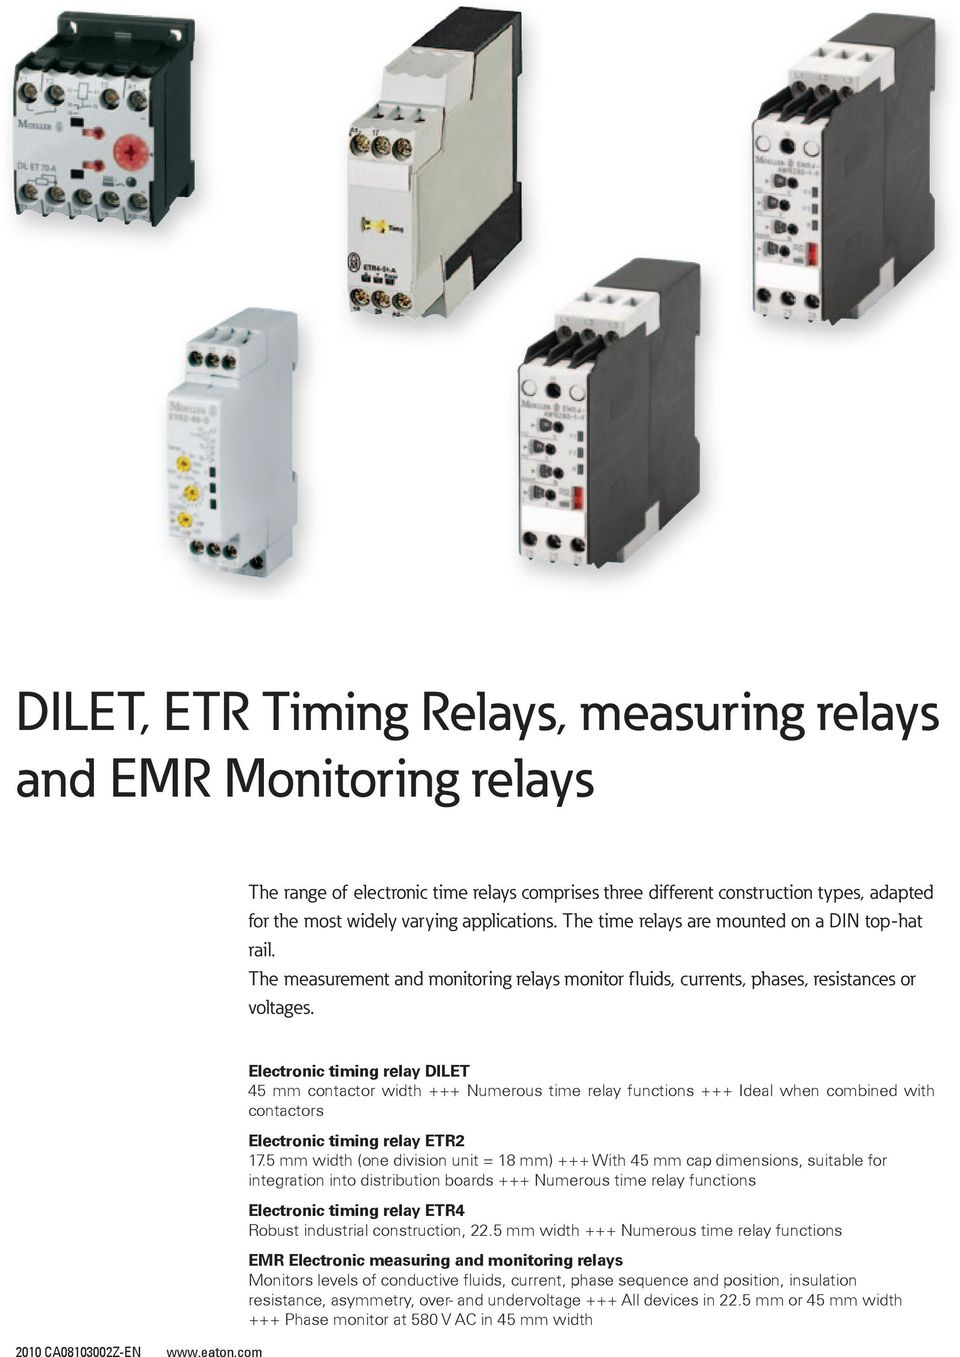 Dilet Etr Timing Relays Measuring And Emr Monitoring Vde 0435 Timer Relay Wiring Diagram Elecronic Iming 45 Mm Conacor Widh Numerous Ime Funcions